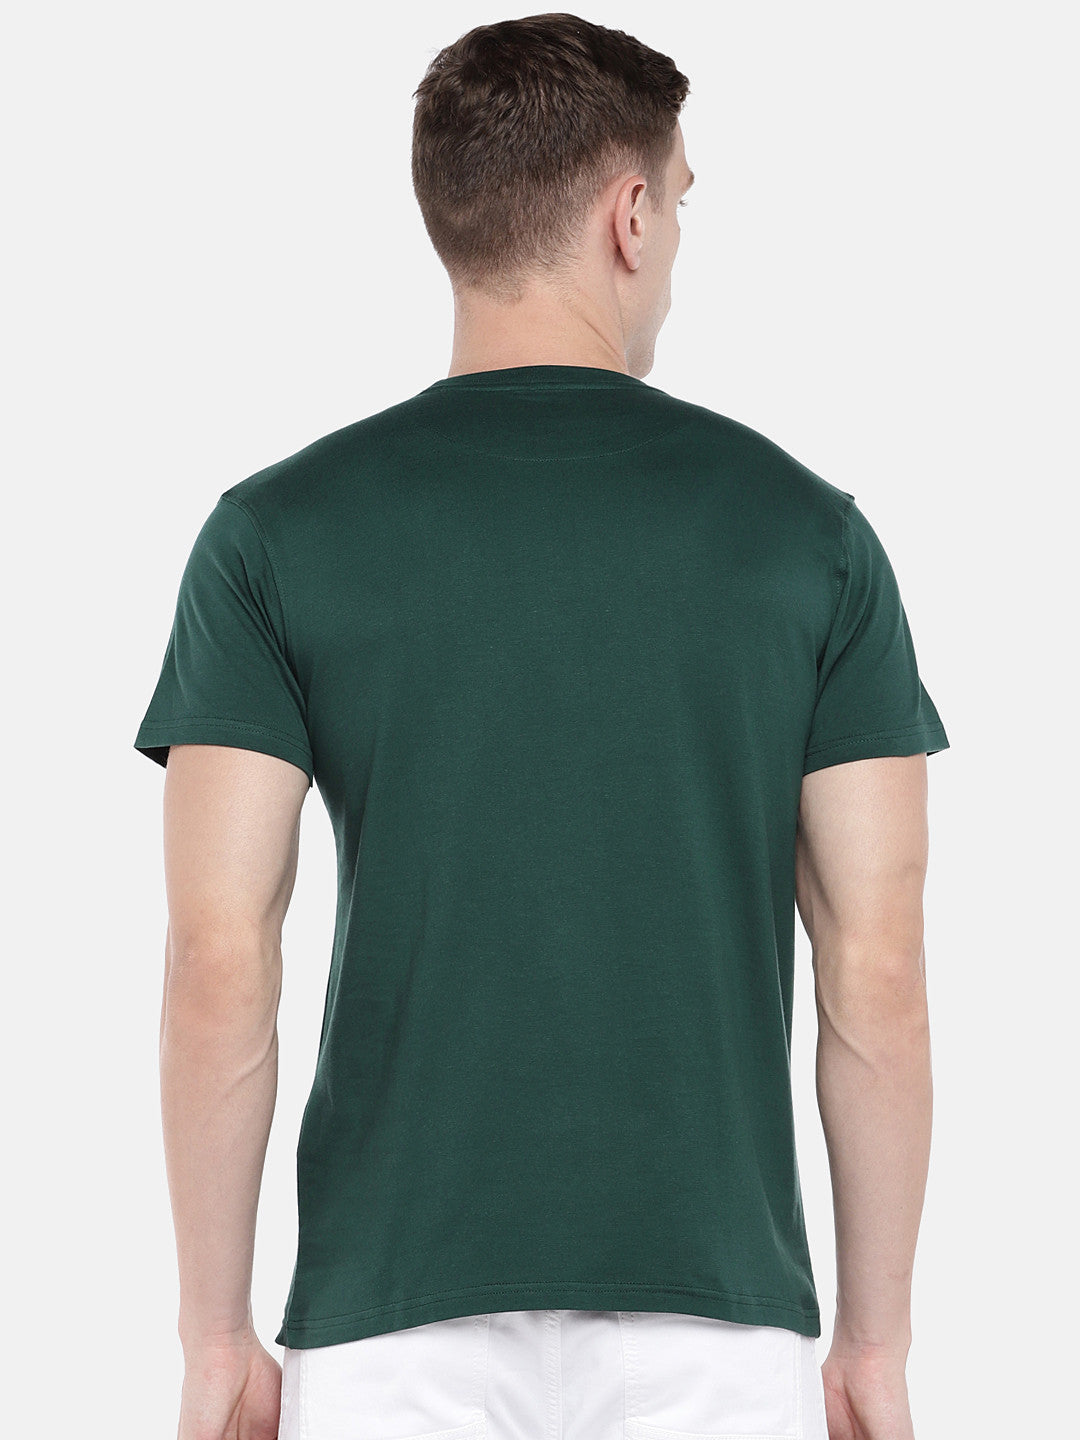 Green Printed Round Neck T-shirt-3